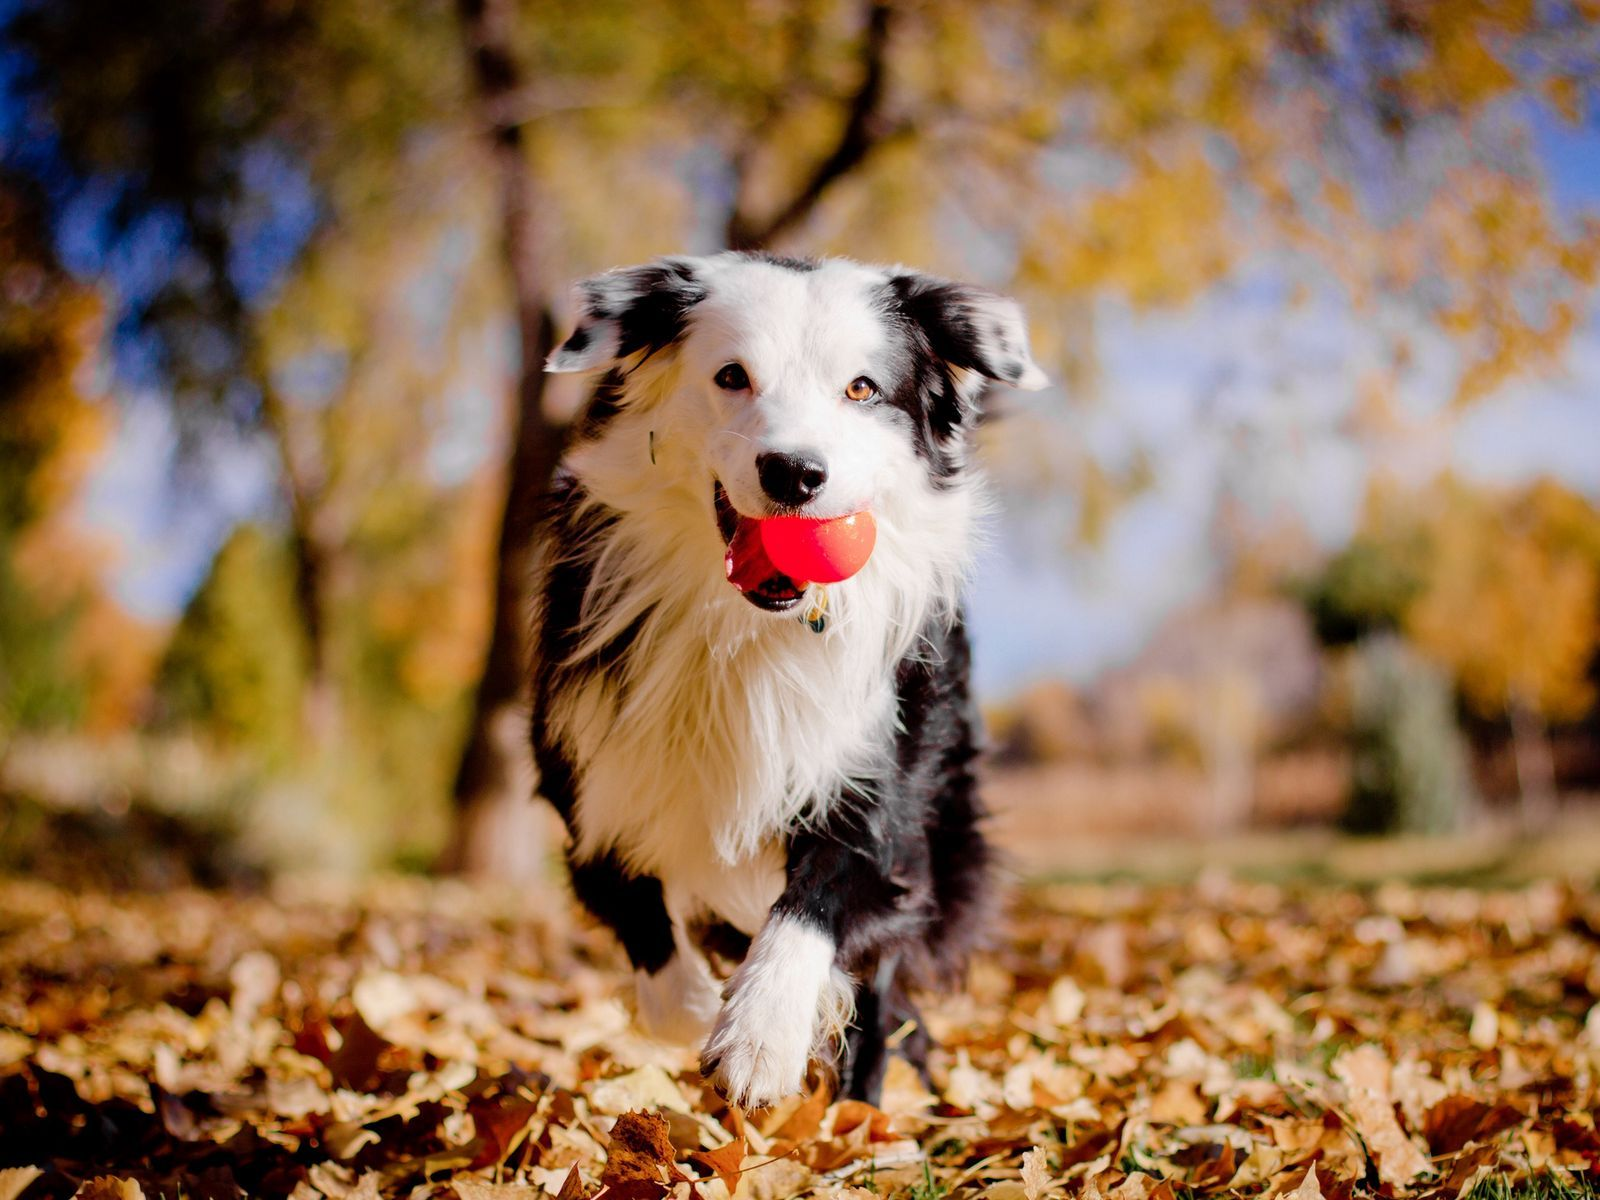 Cool Collections Of Dark Brown Wallpaper Borders For Desktop Laptop And Mobiles Download Brown Border Collie Stock Photo Dog Tricks Easy Dog Skin Pet Training